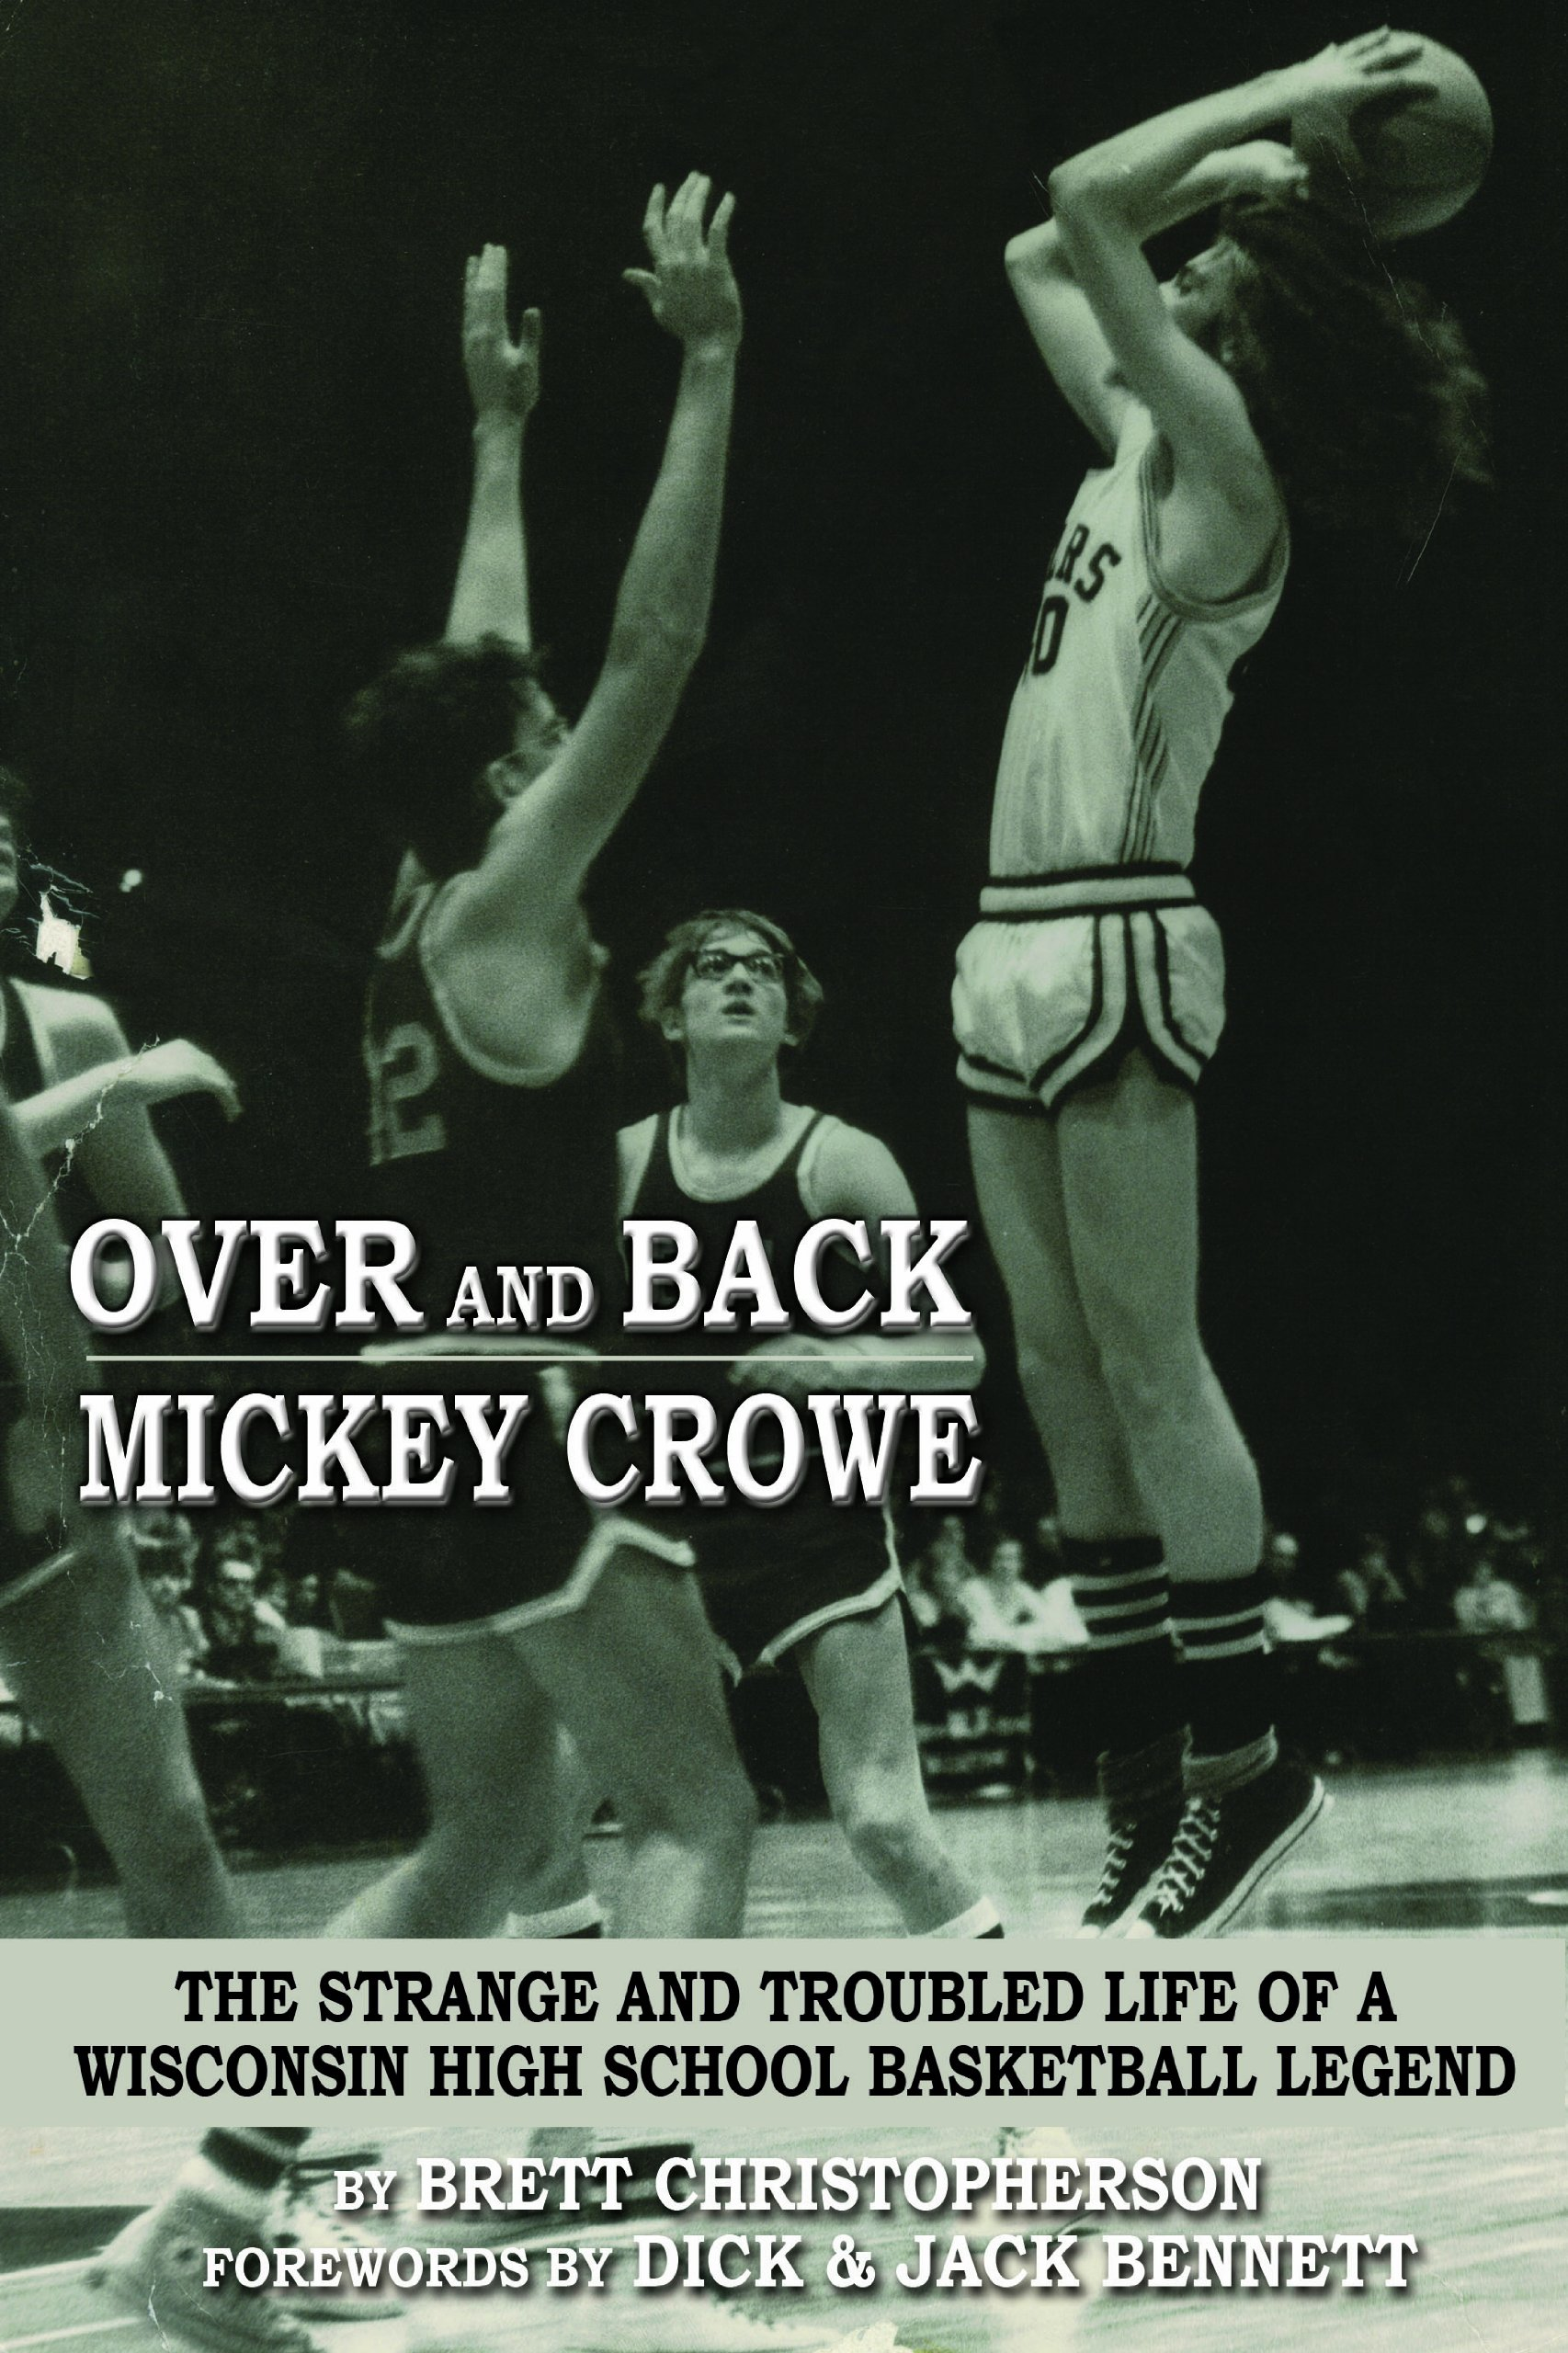 Over and Back - Mickey Crowe The Strange and Troubled Life of a Wisconsin High School Basketball Legend PDF